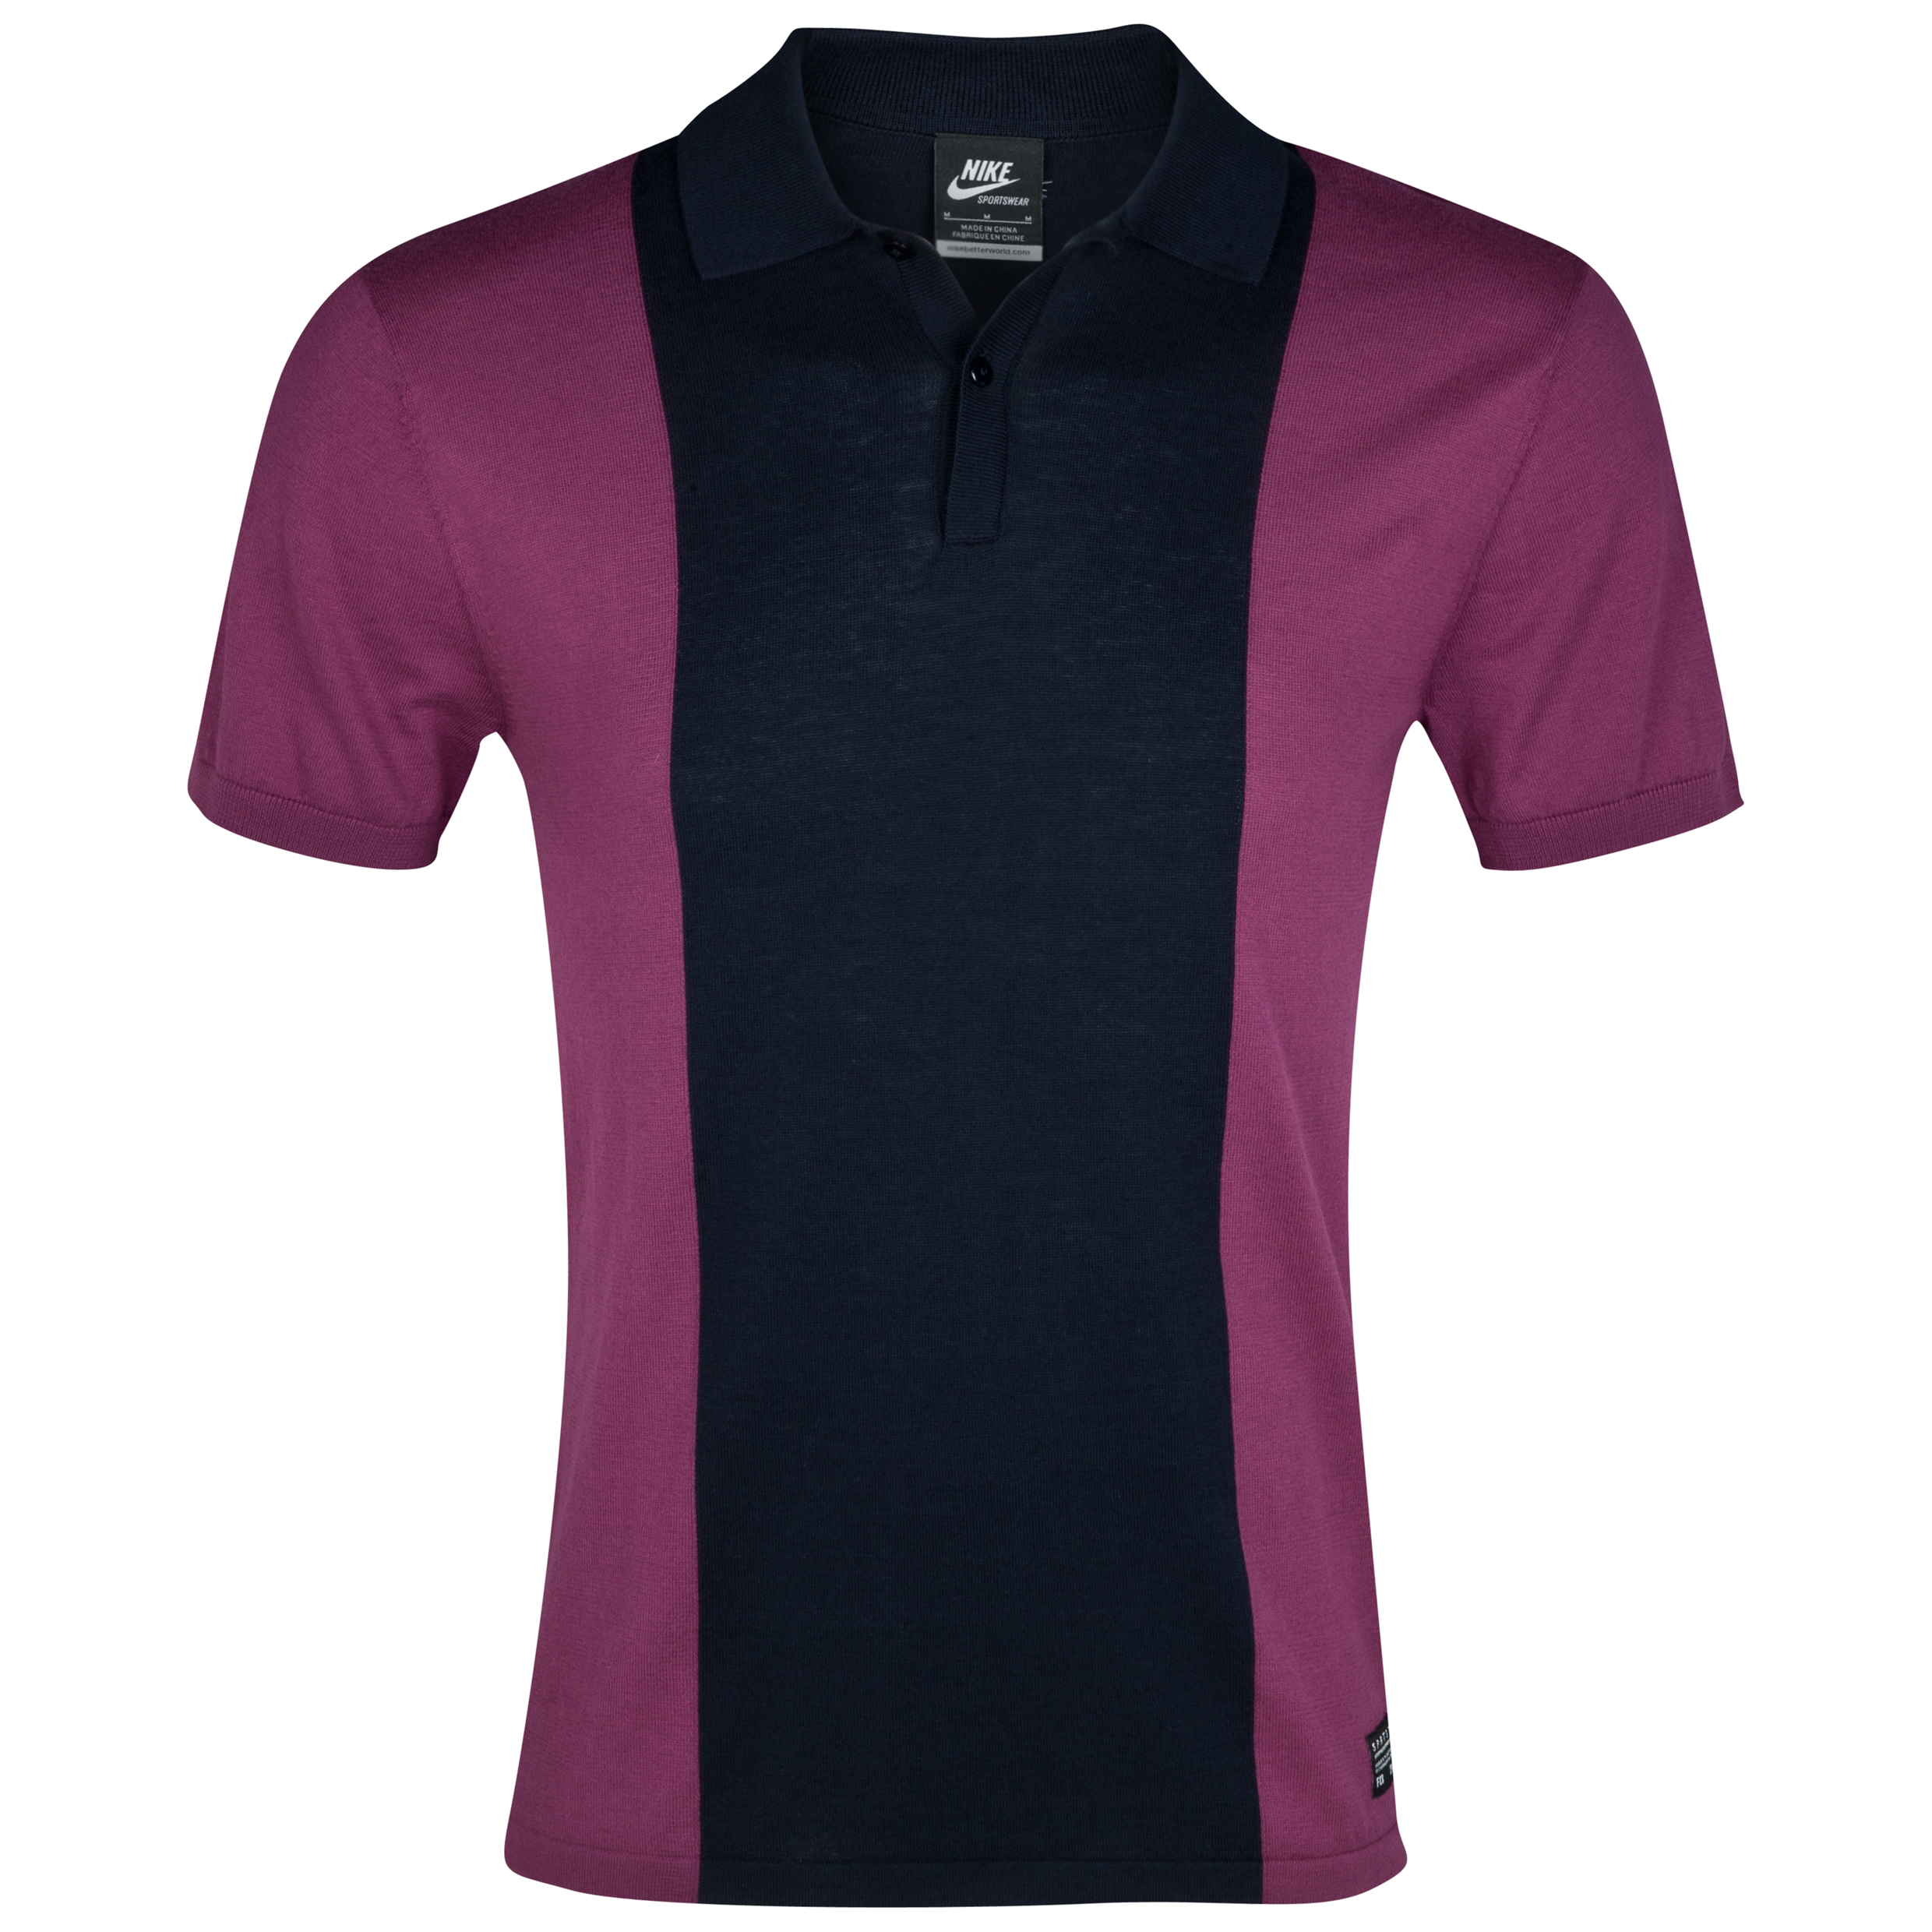 Barcelona NSW Knit Polo - Dark Obsidian